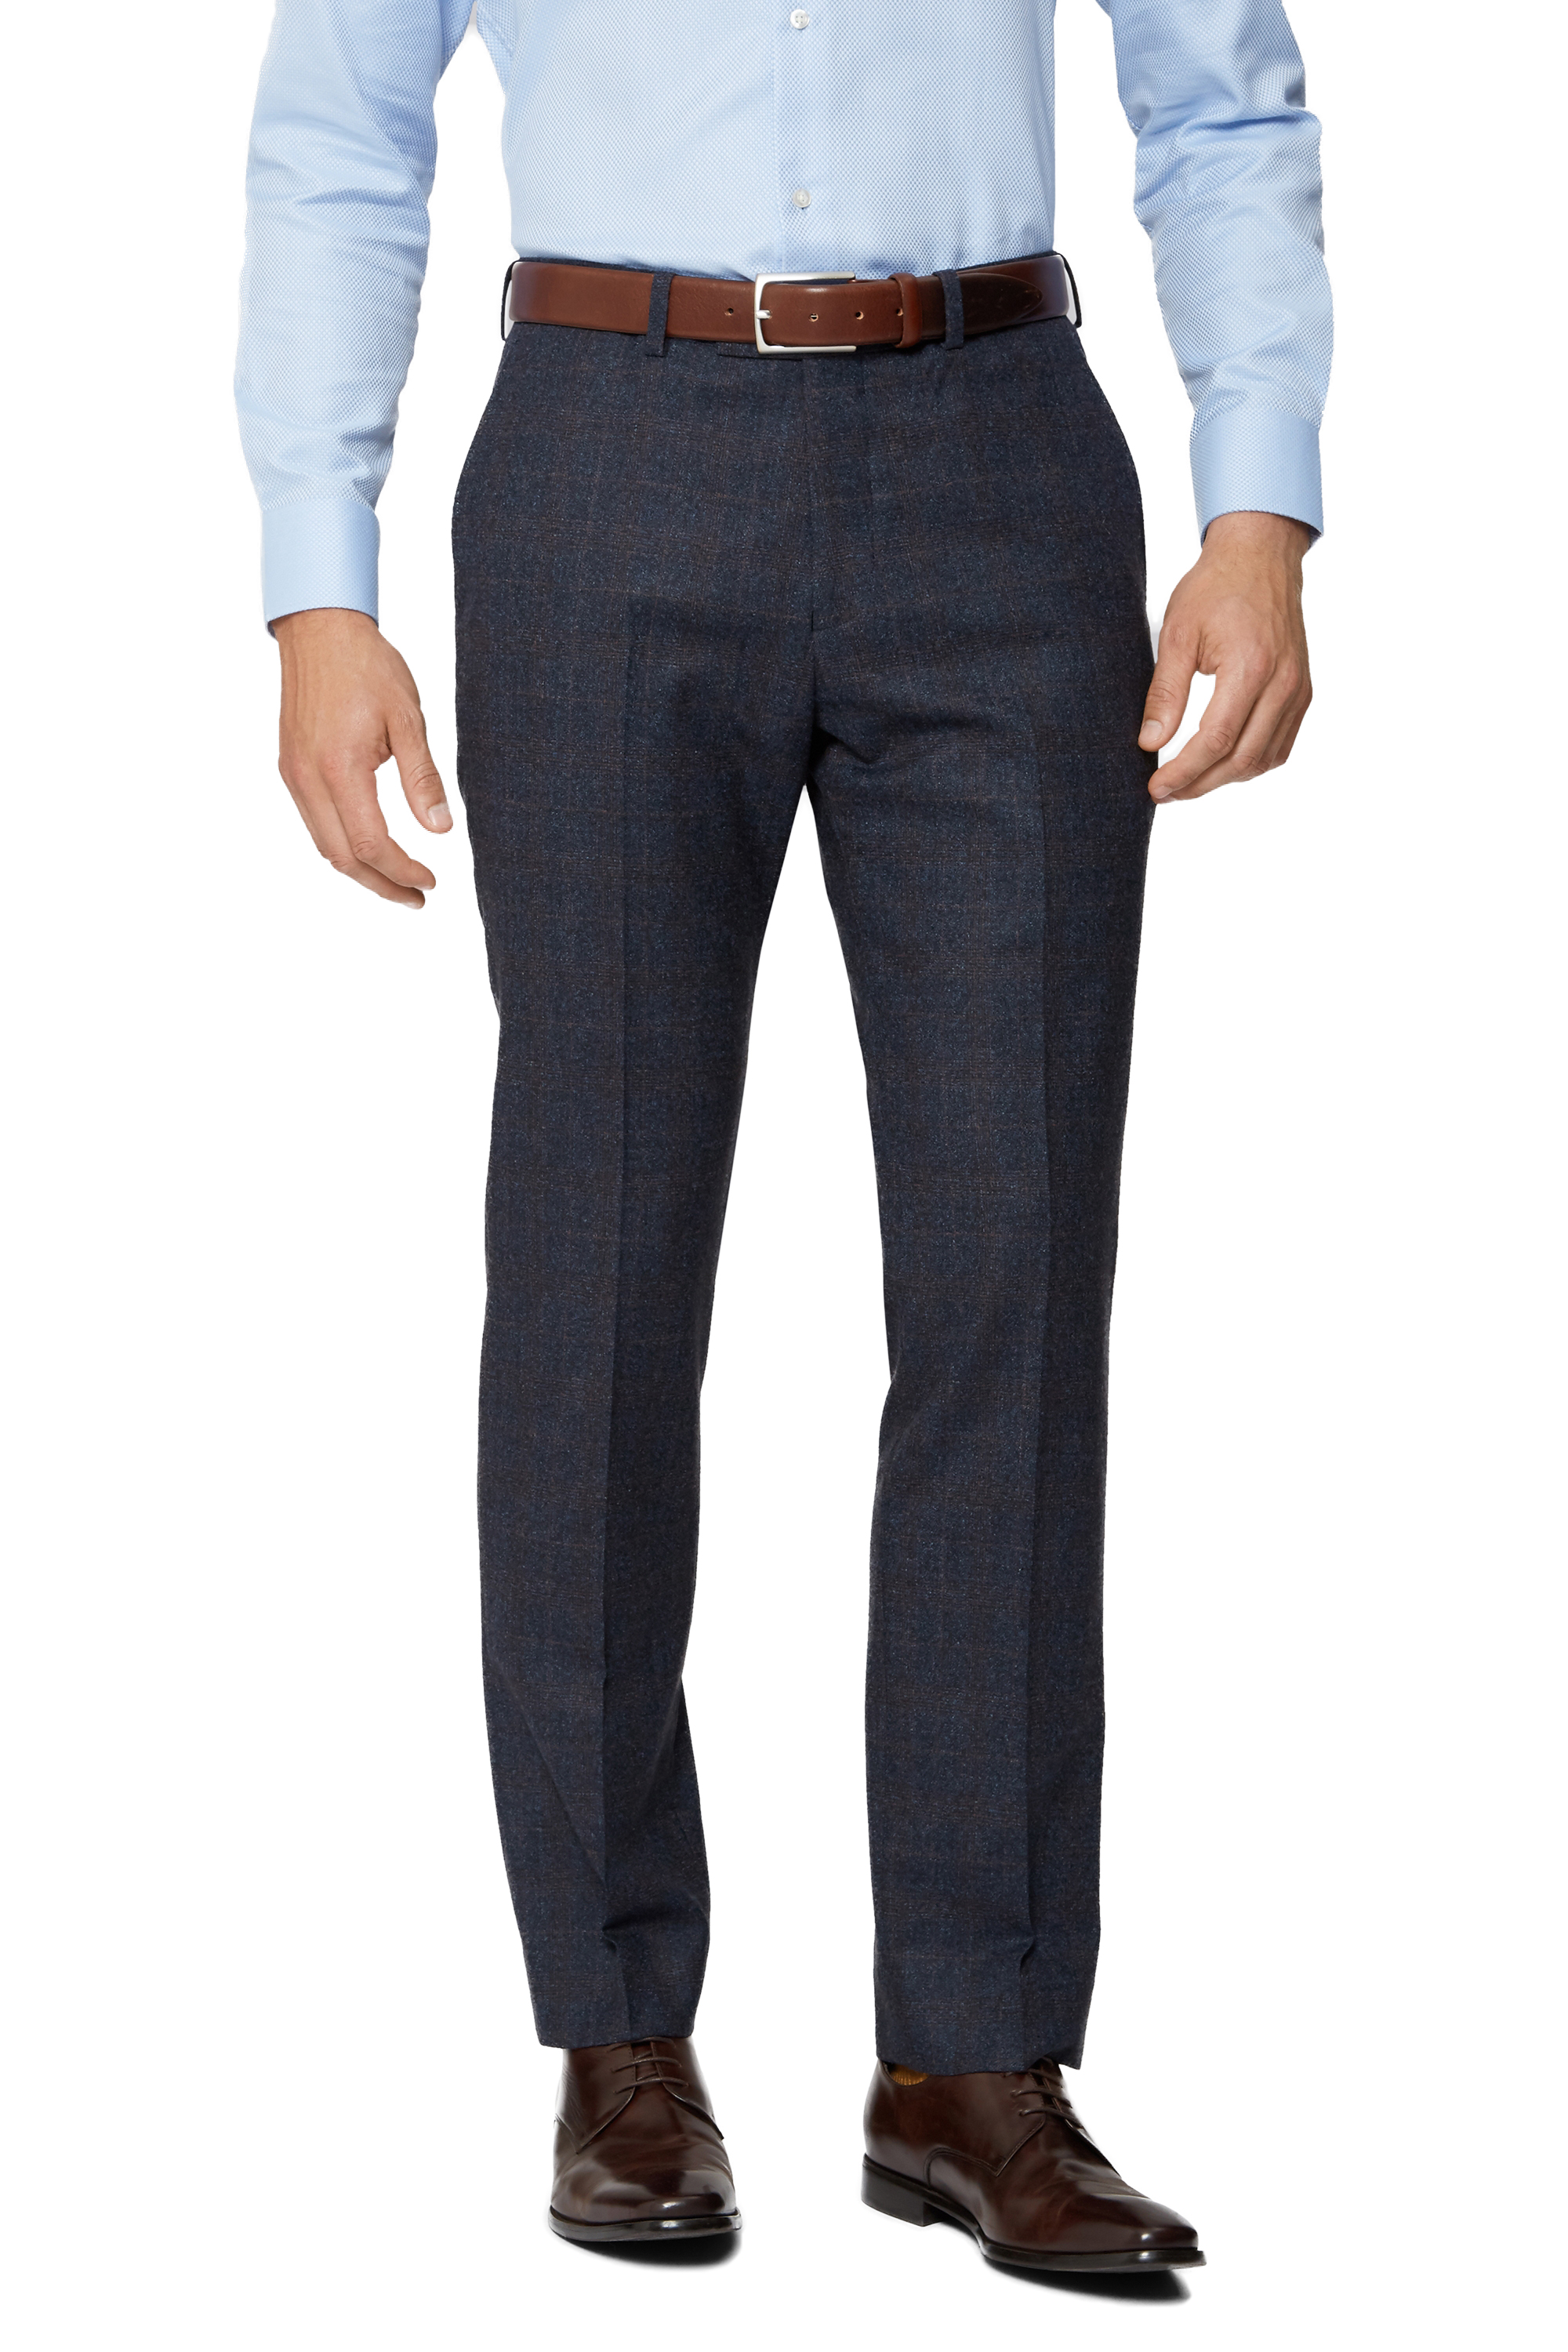 Cerruti Mens Navy Blue Suit Trousers Tailored Fit With Rust Check Formal Pants | EBay